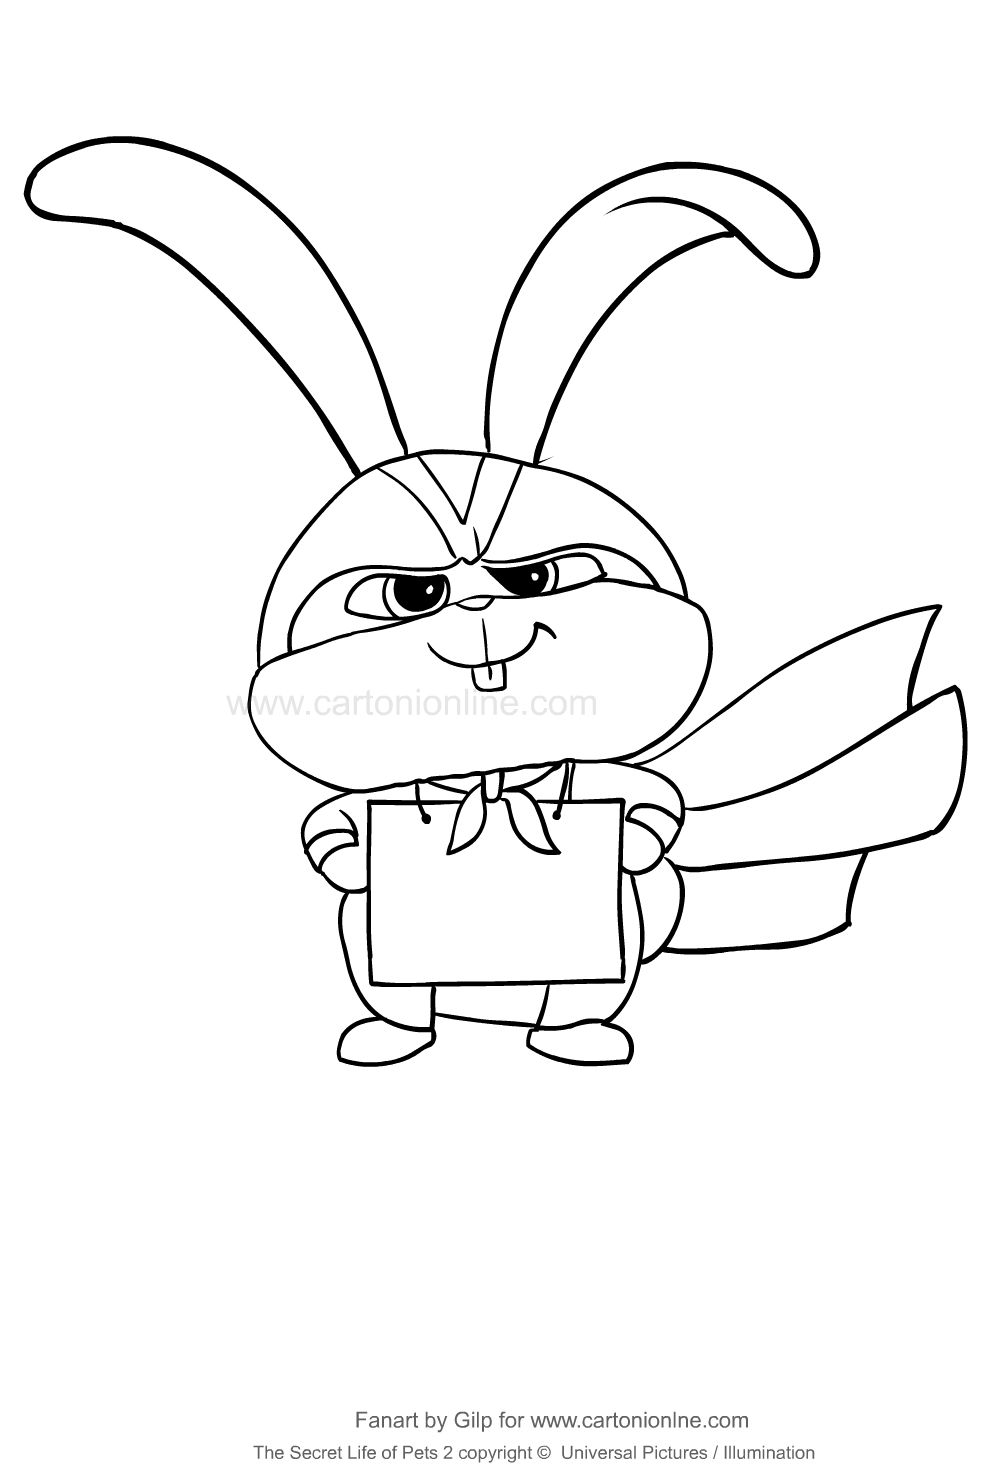 Snowball From The Secret Life Of Pets 2 Coloring Page To Print And